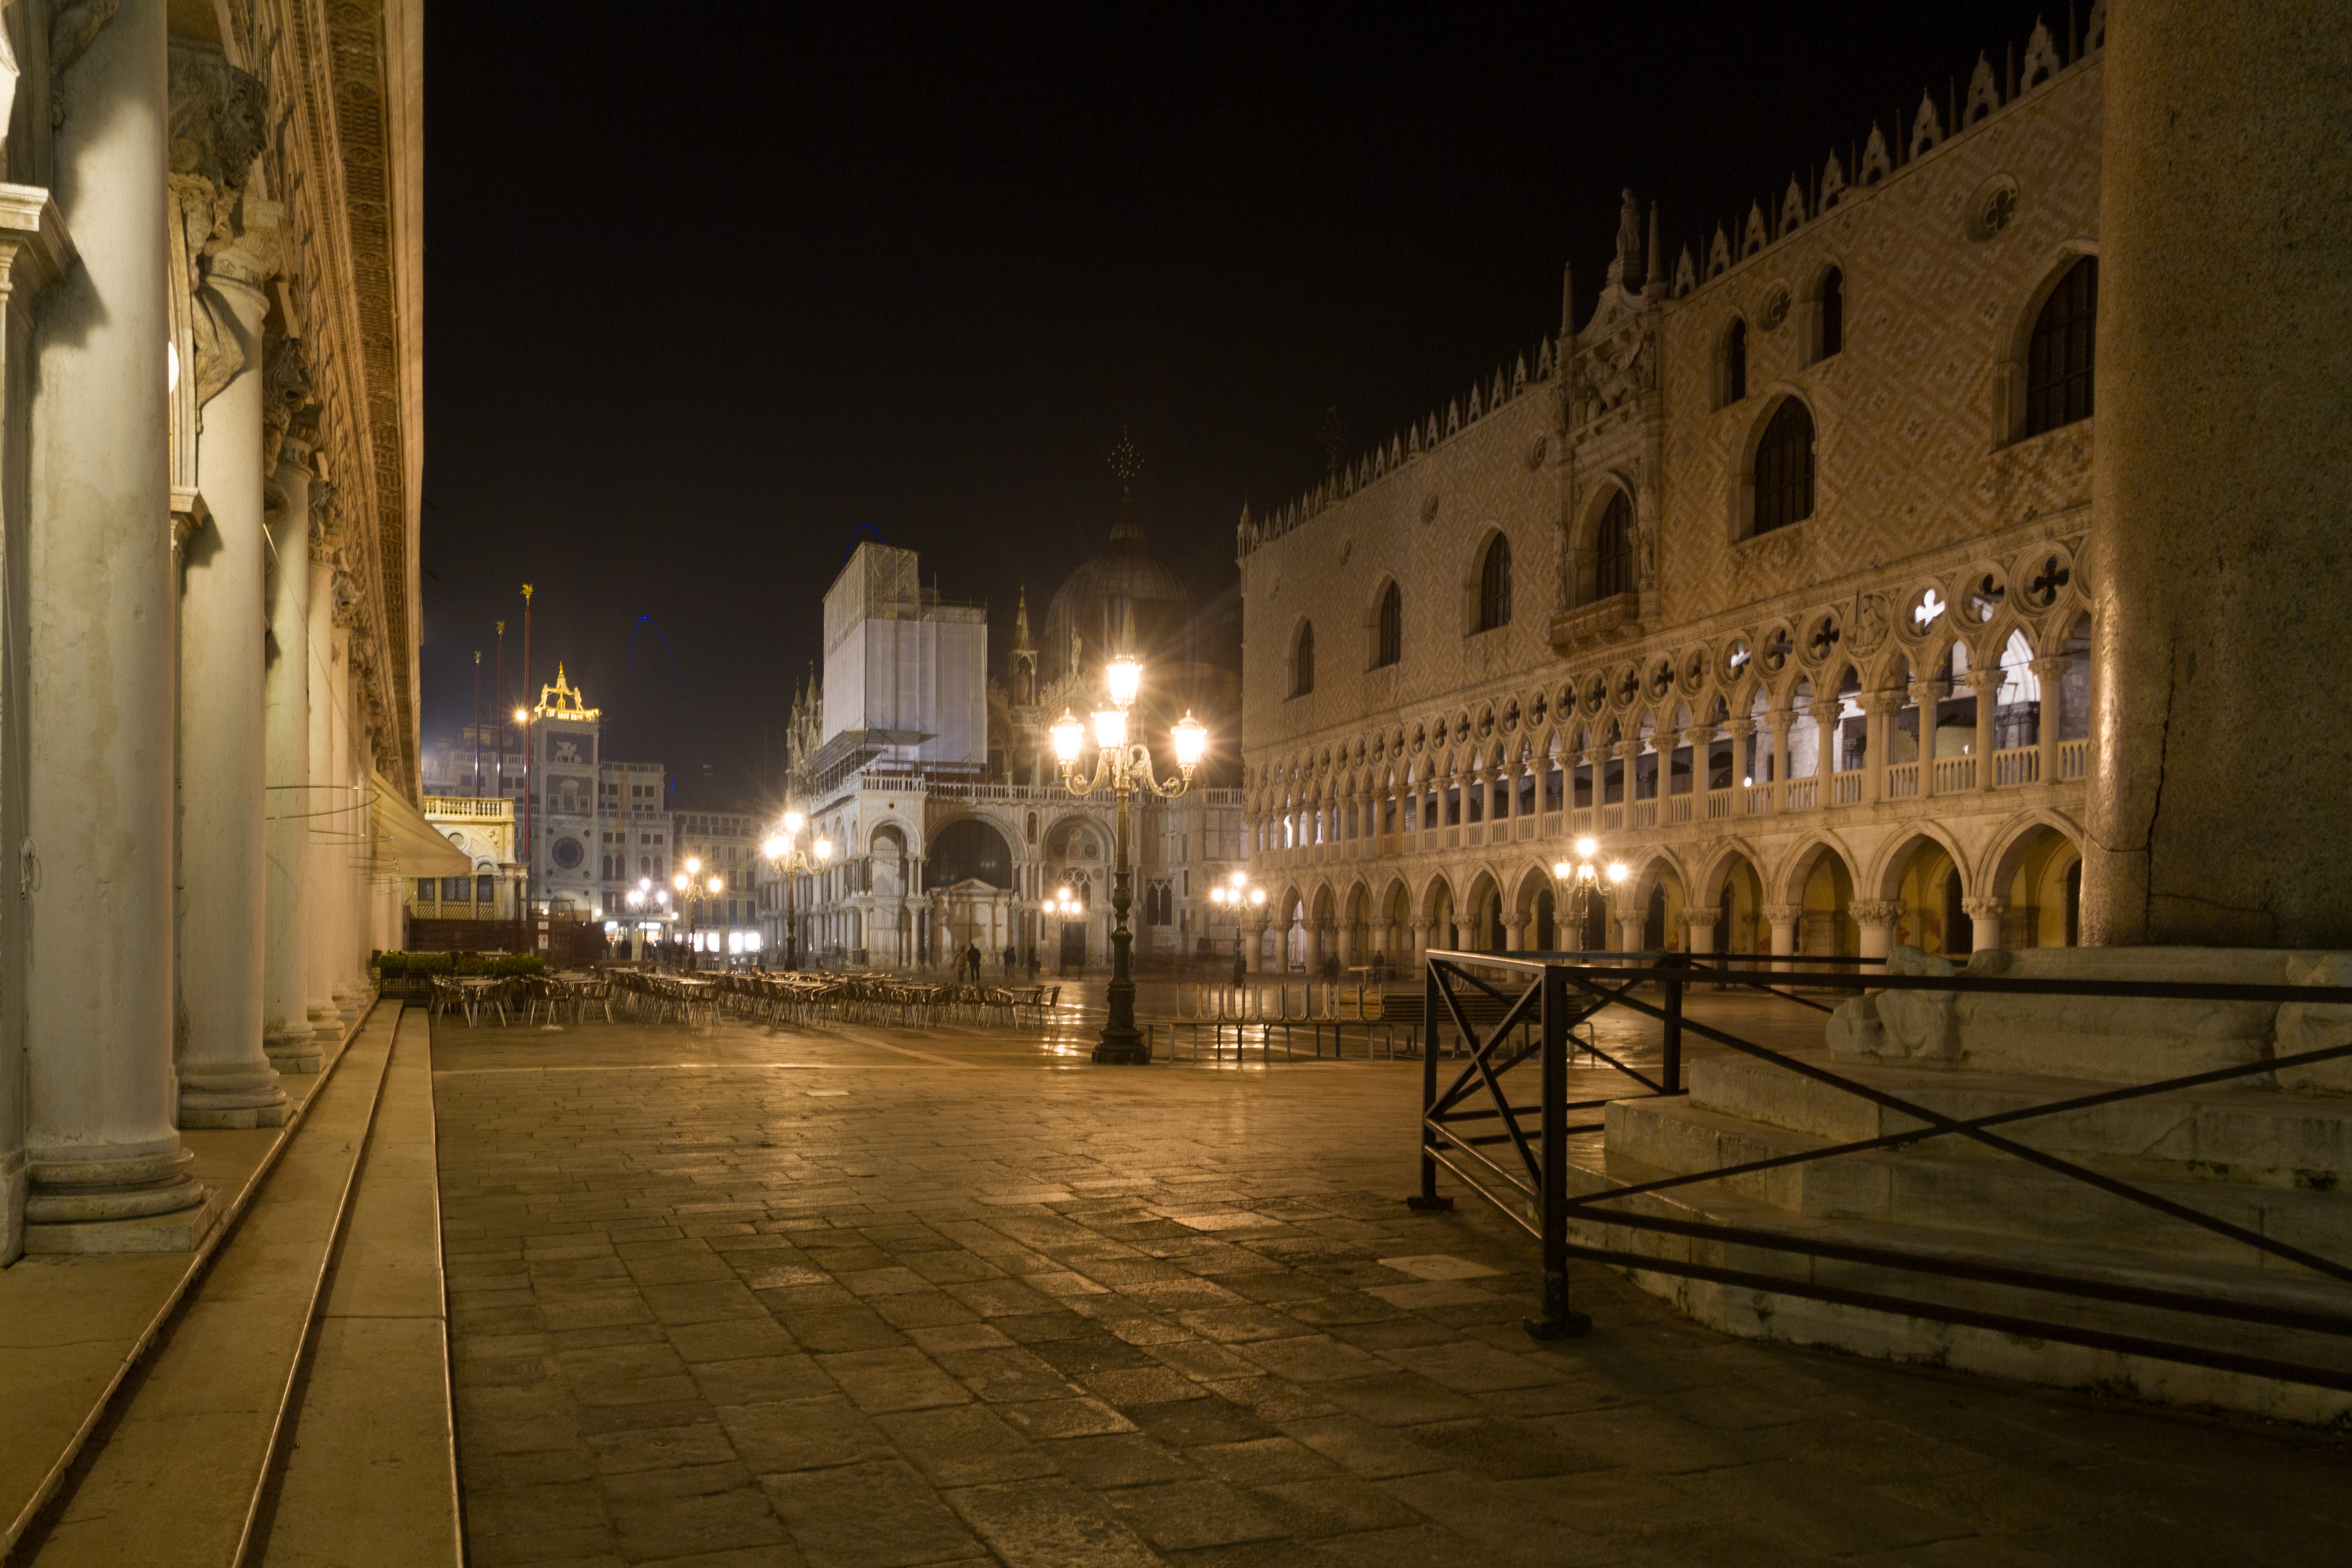 A view of Piazza San Marco